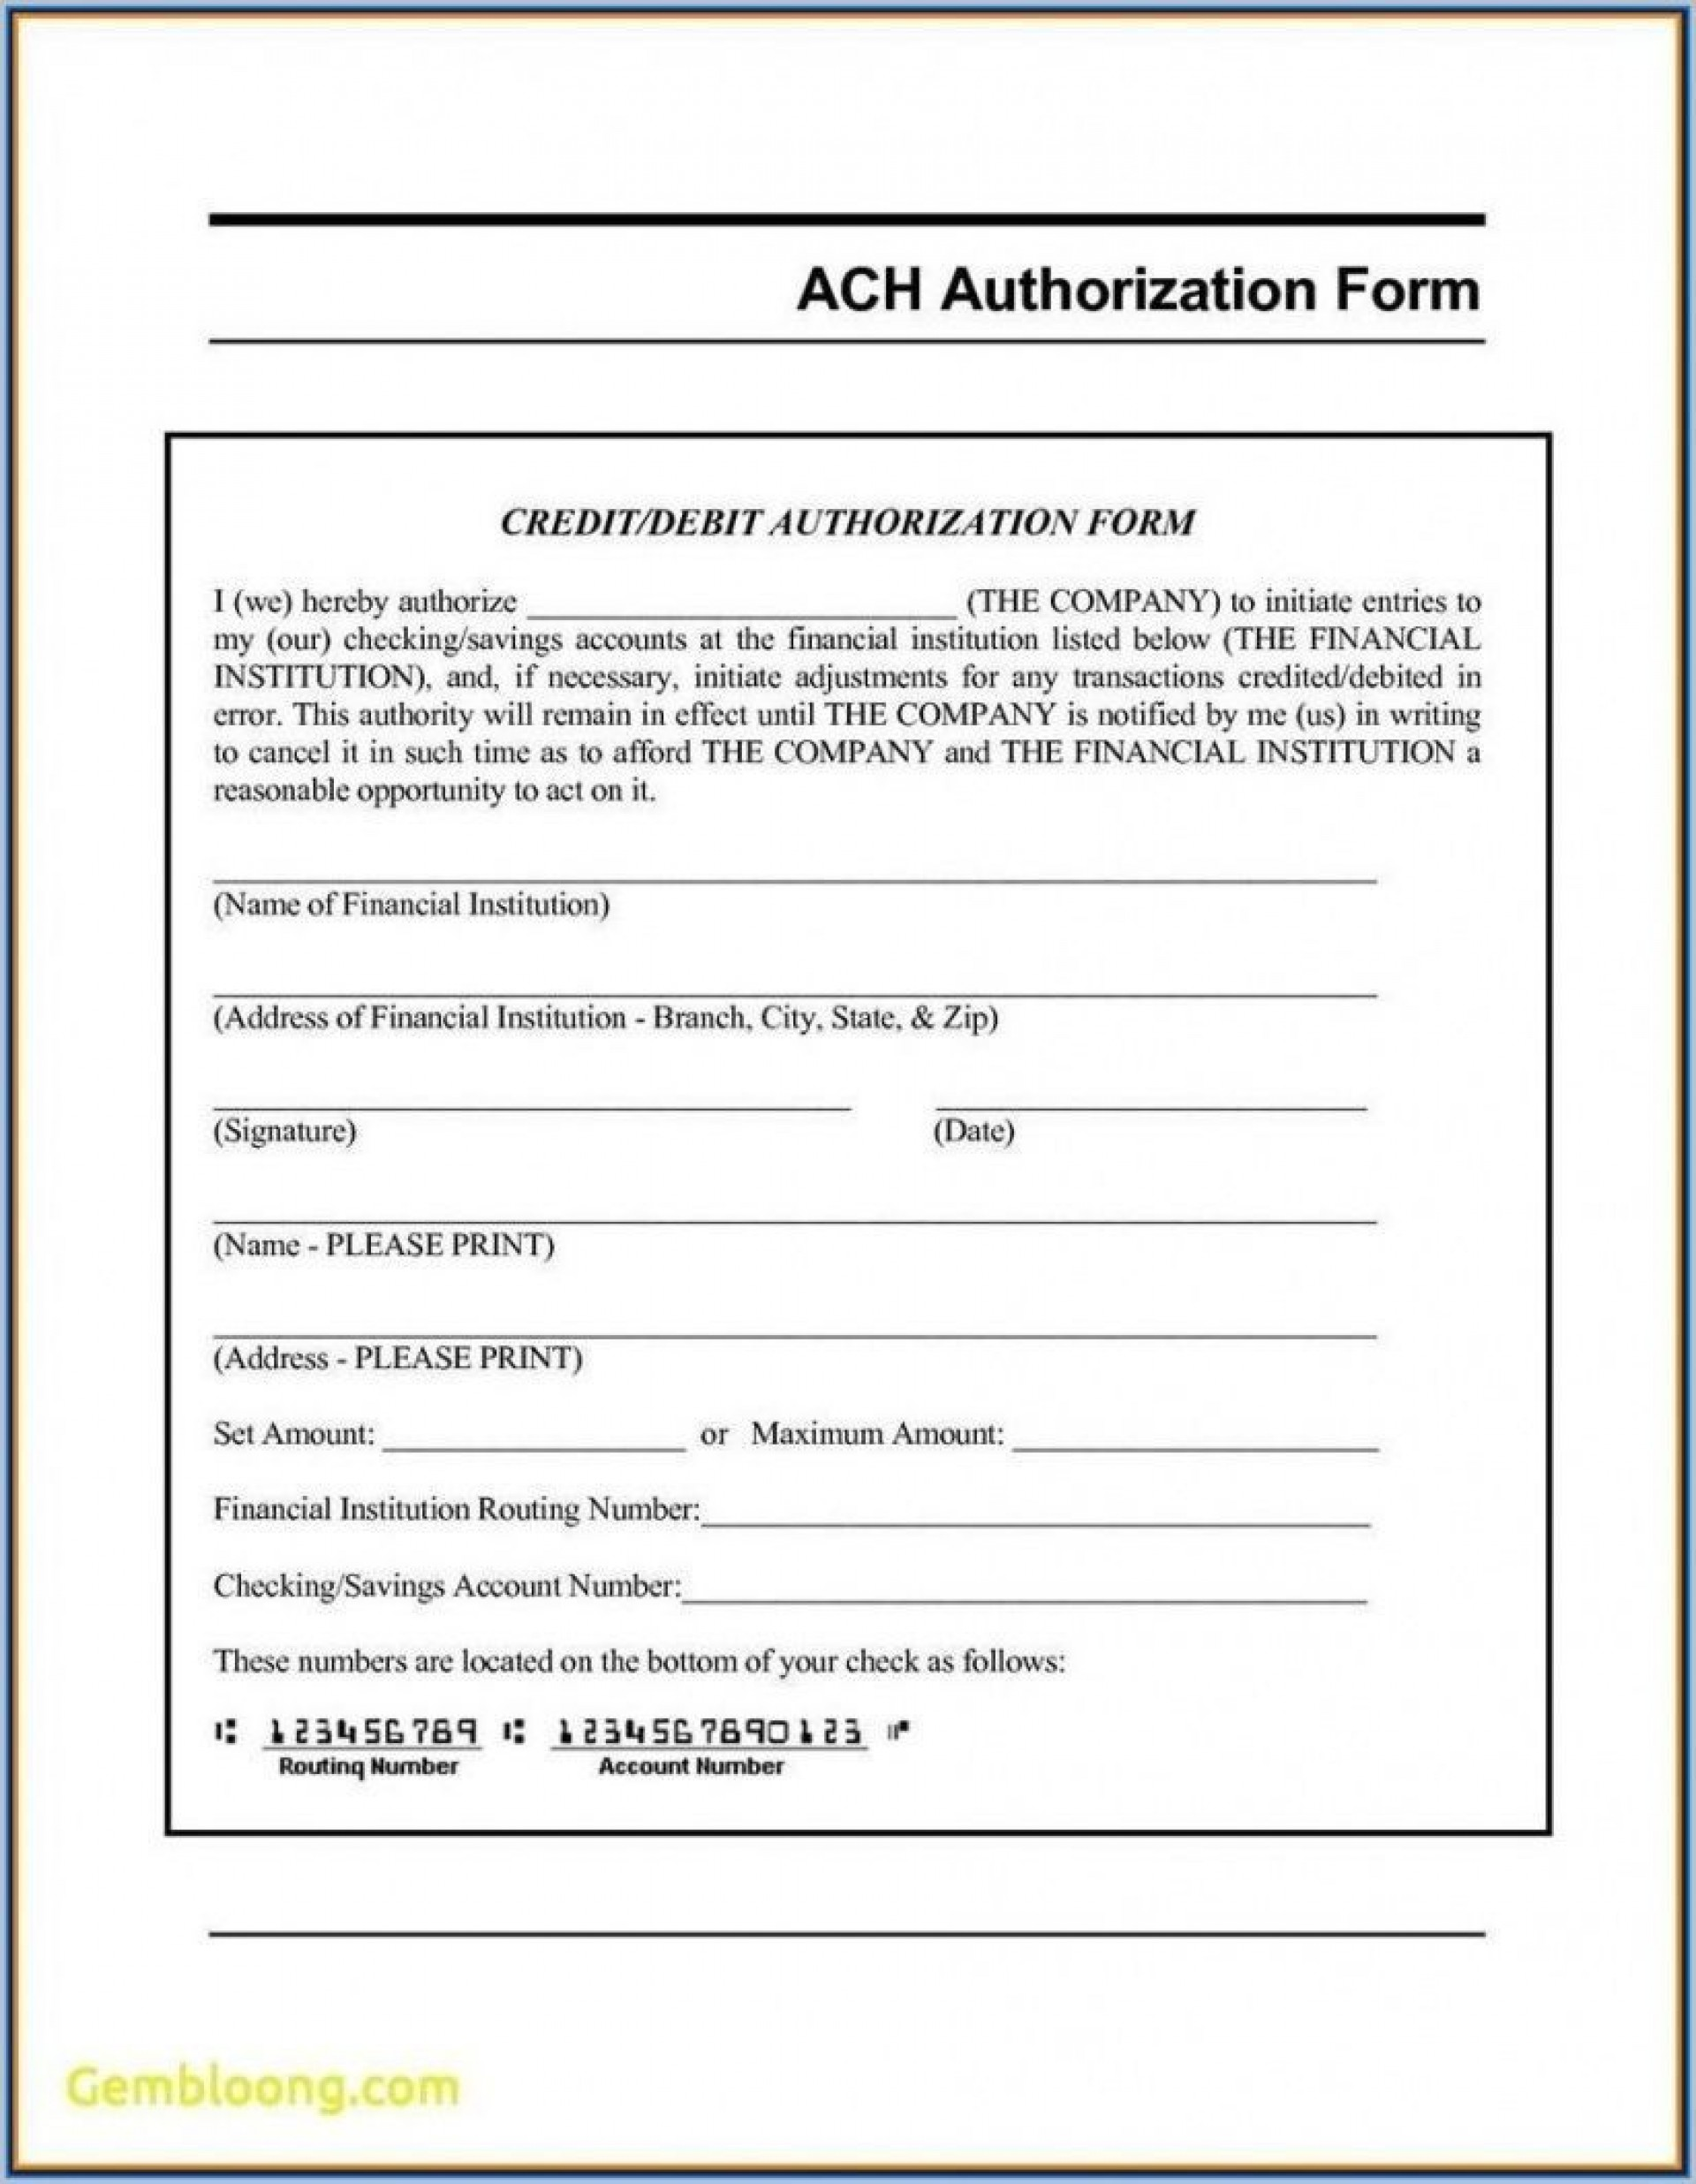 002 Frightening Direct Deposit Agreement Authorization Form Template Image 1920